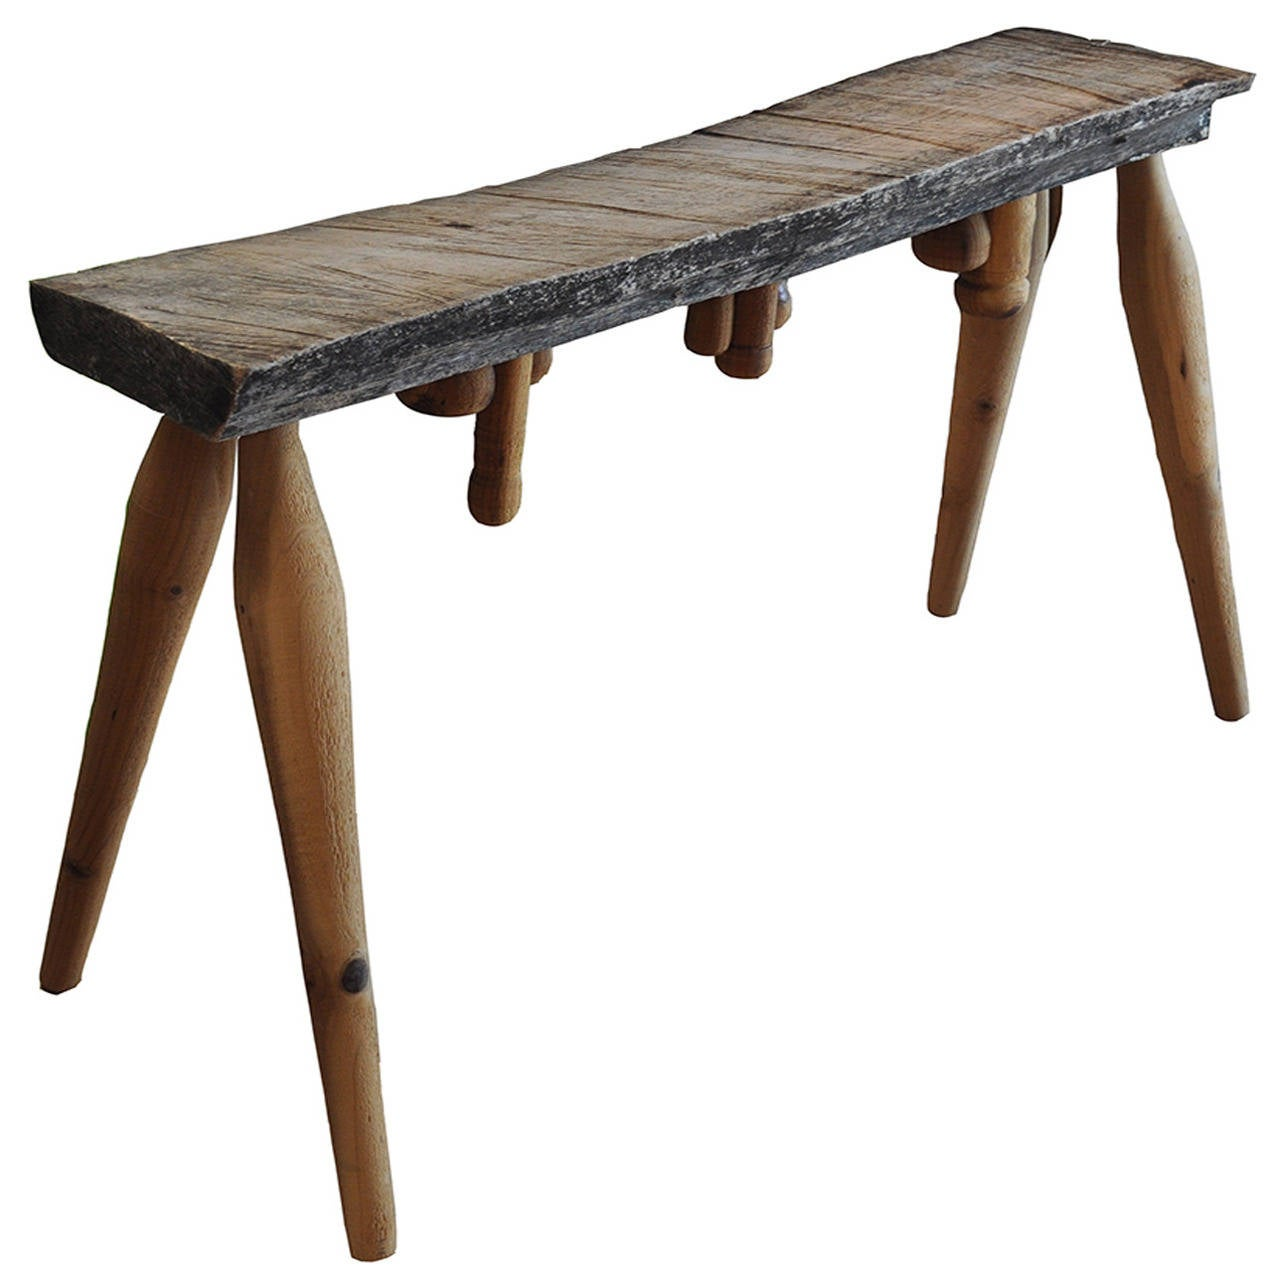 Deacon 39 S Bench For Sale At 1stdibs